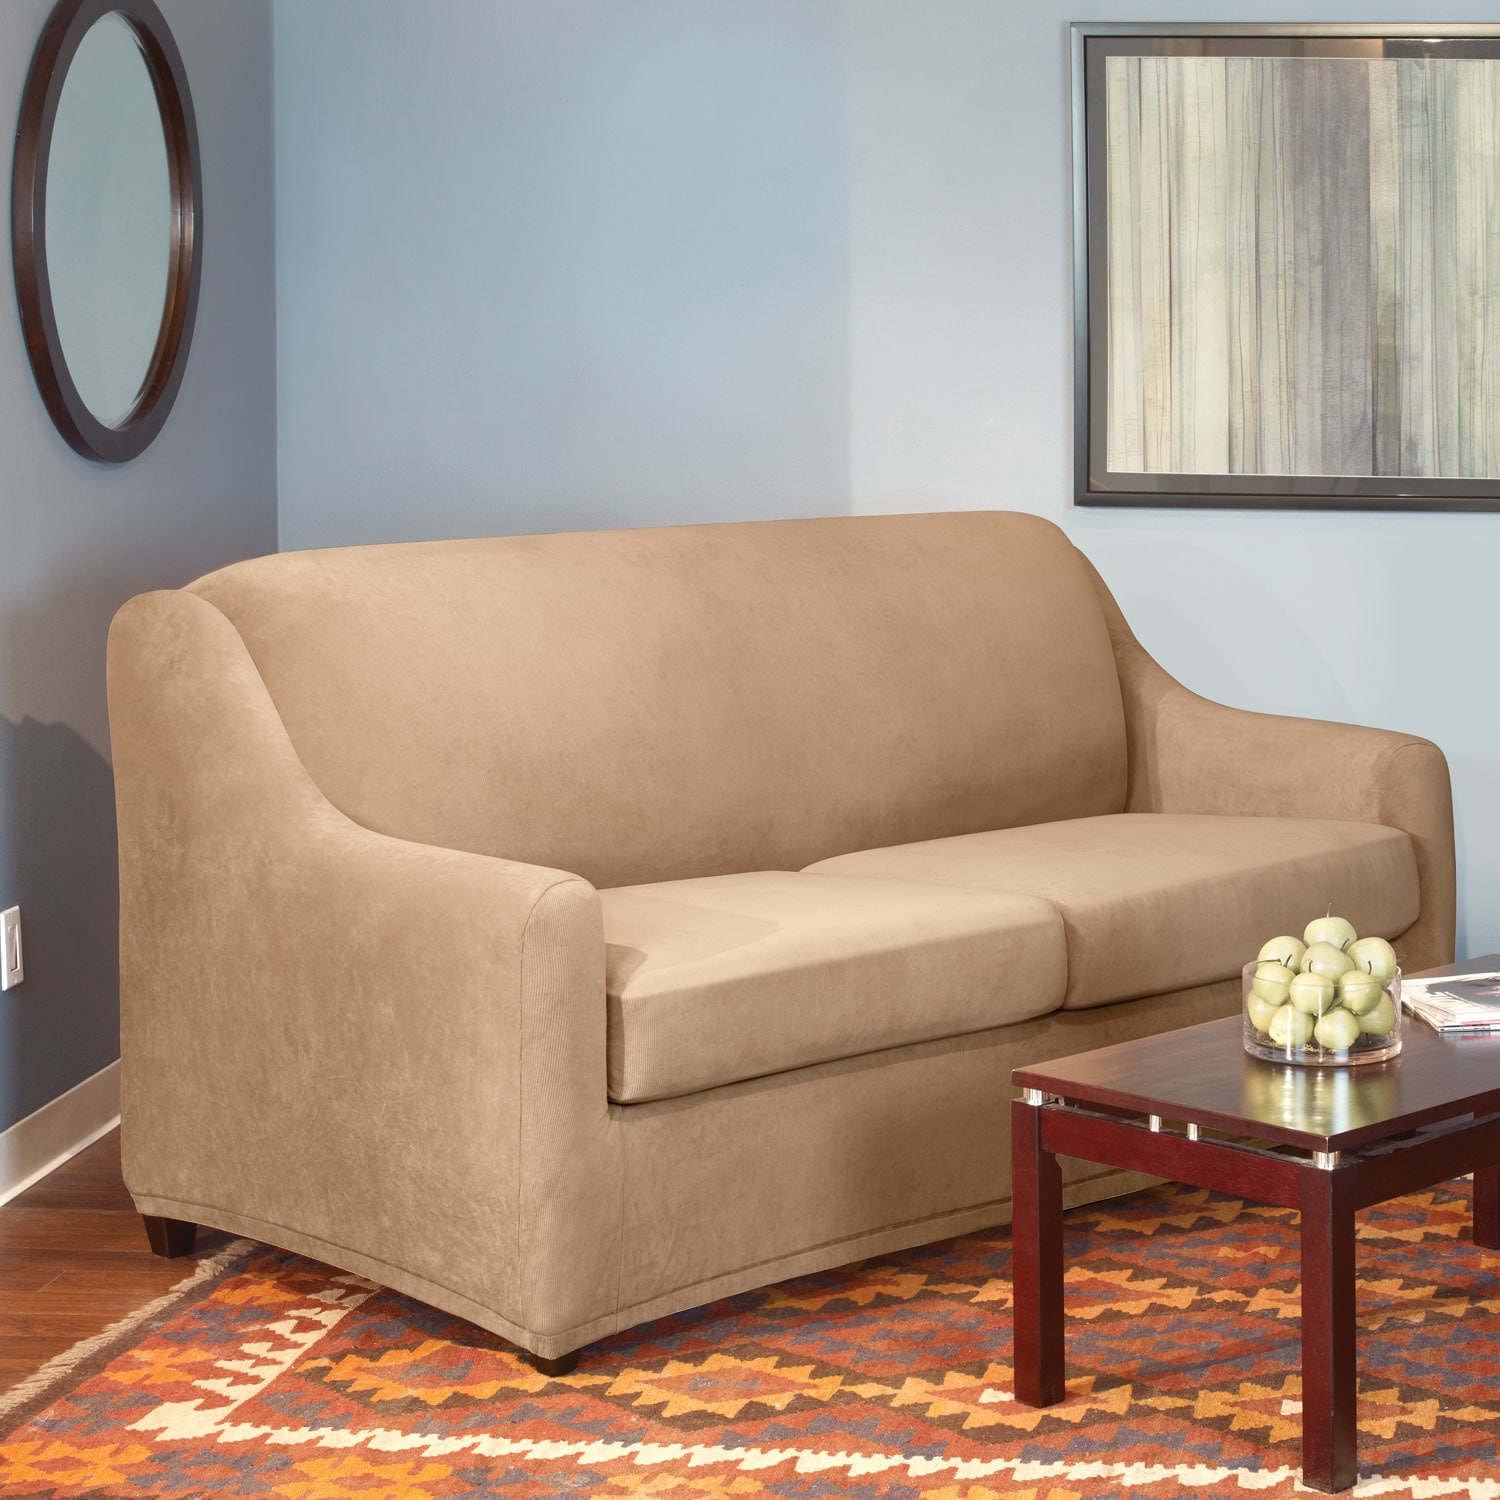 Shop Sure Fit Stretch Pearson Full 3 Piece Sleeper Sofa Slipcover